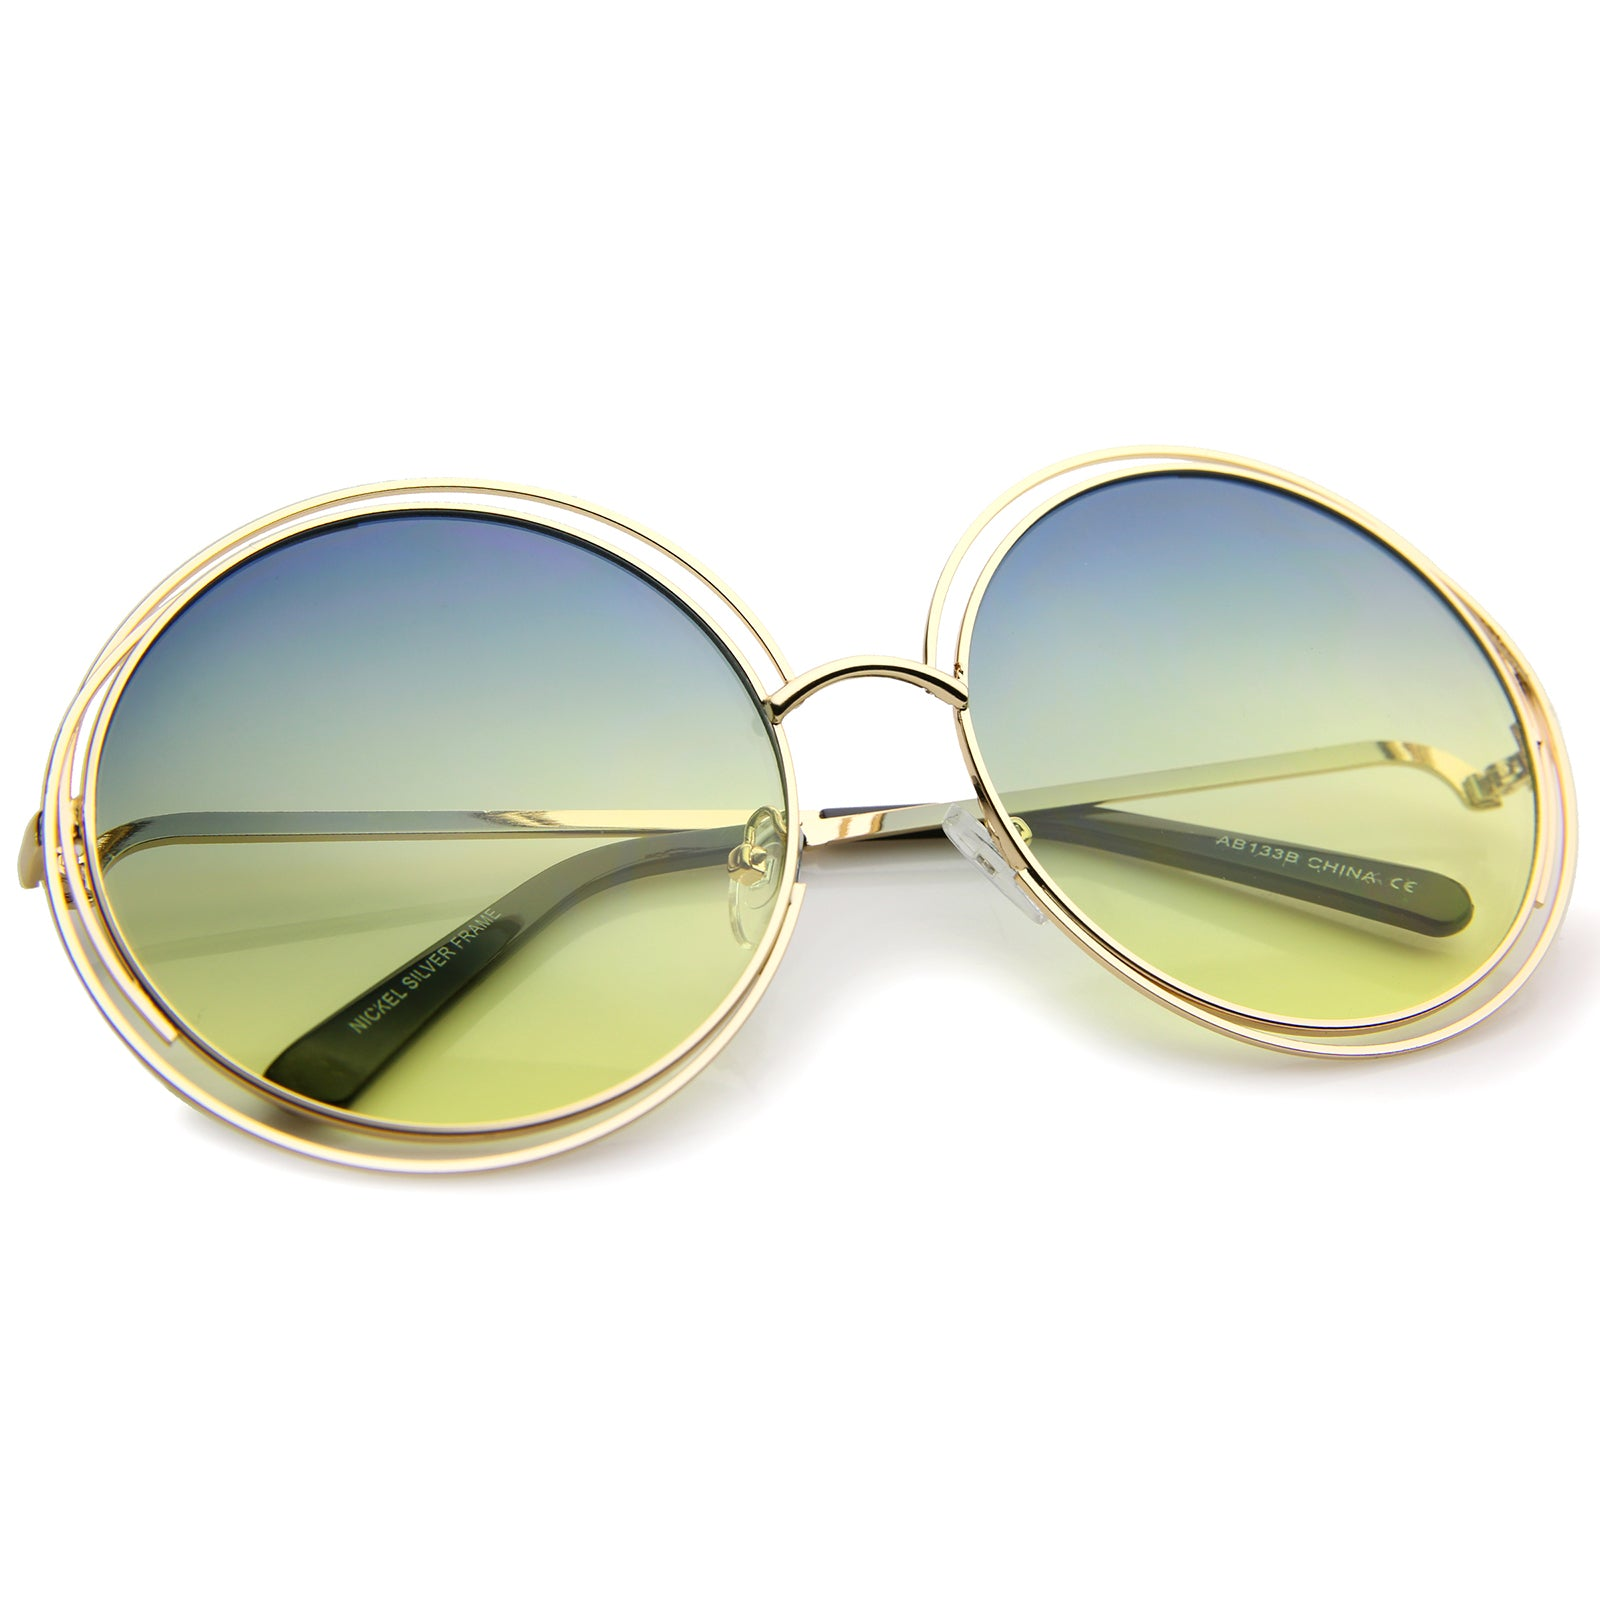 Oversize Wire Frame Gradient Two-Tone Color Lens Round Sunglasses 61mm - sunglass.la - 20